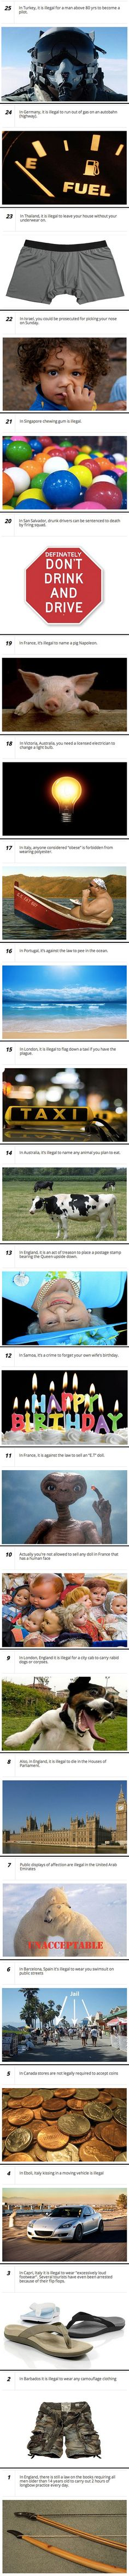 25 strange and bizarre laws you will not believe exist, but actually do.